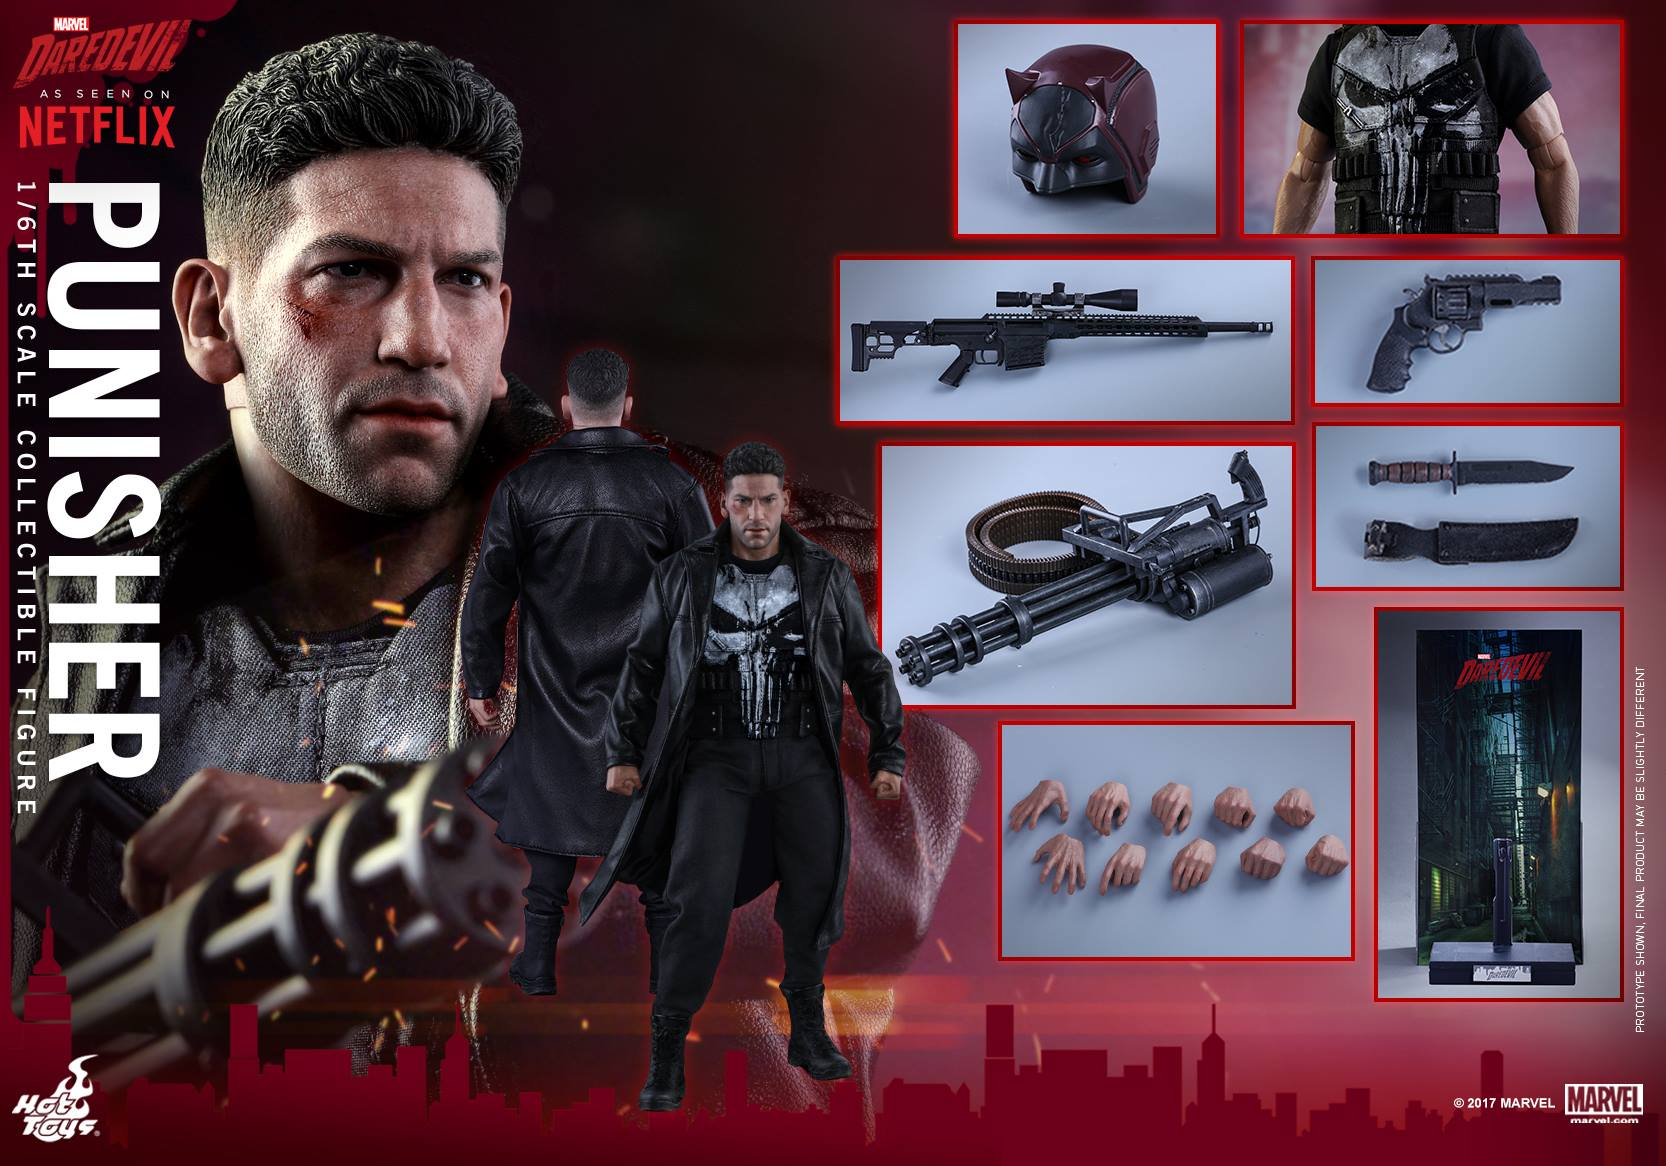 Hot Toys The Punisher Sixth Scale Figure Pre-Orders